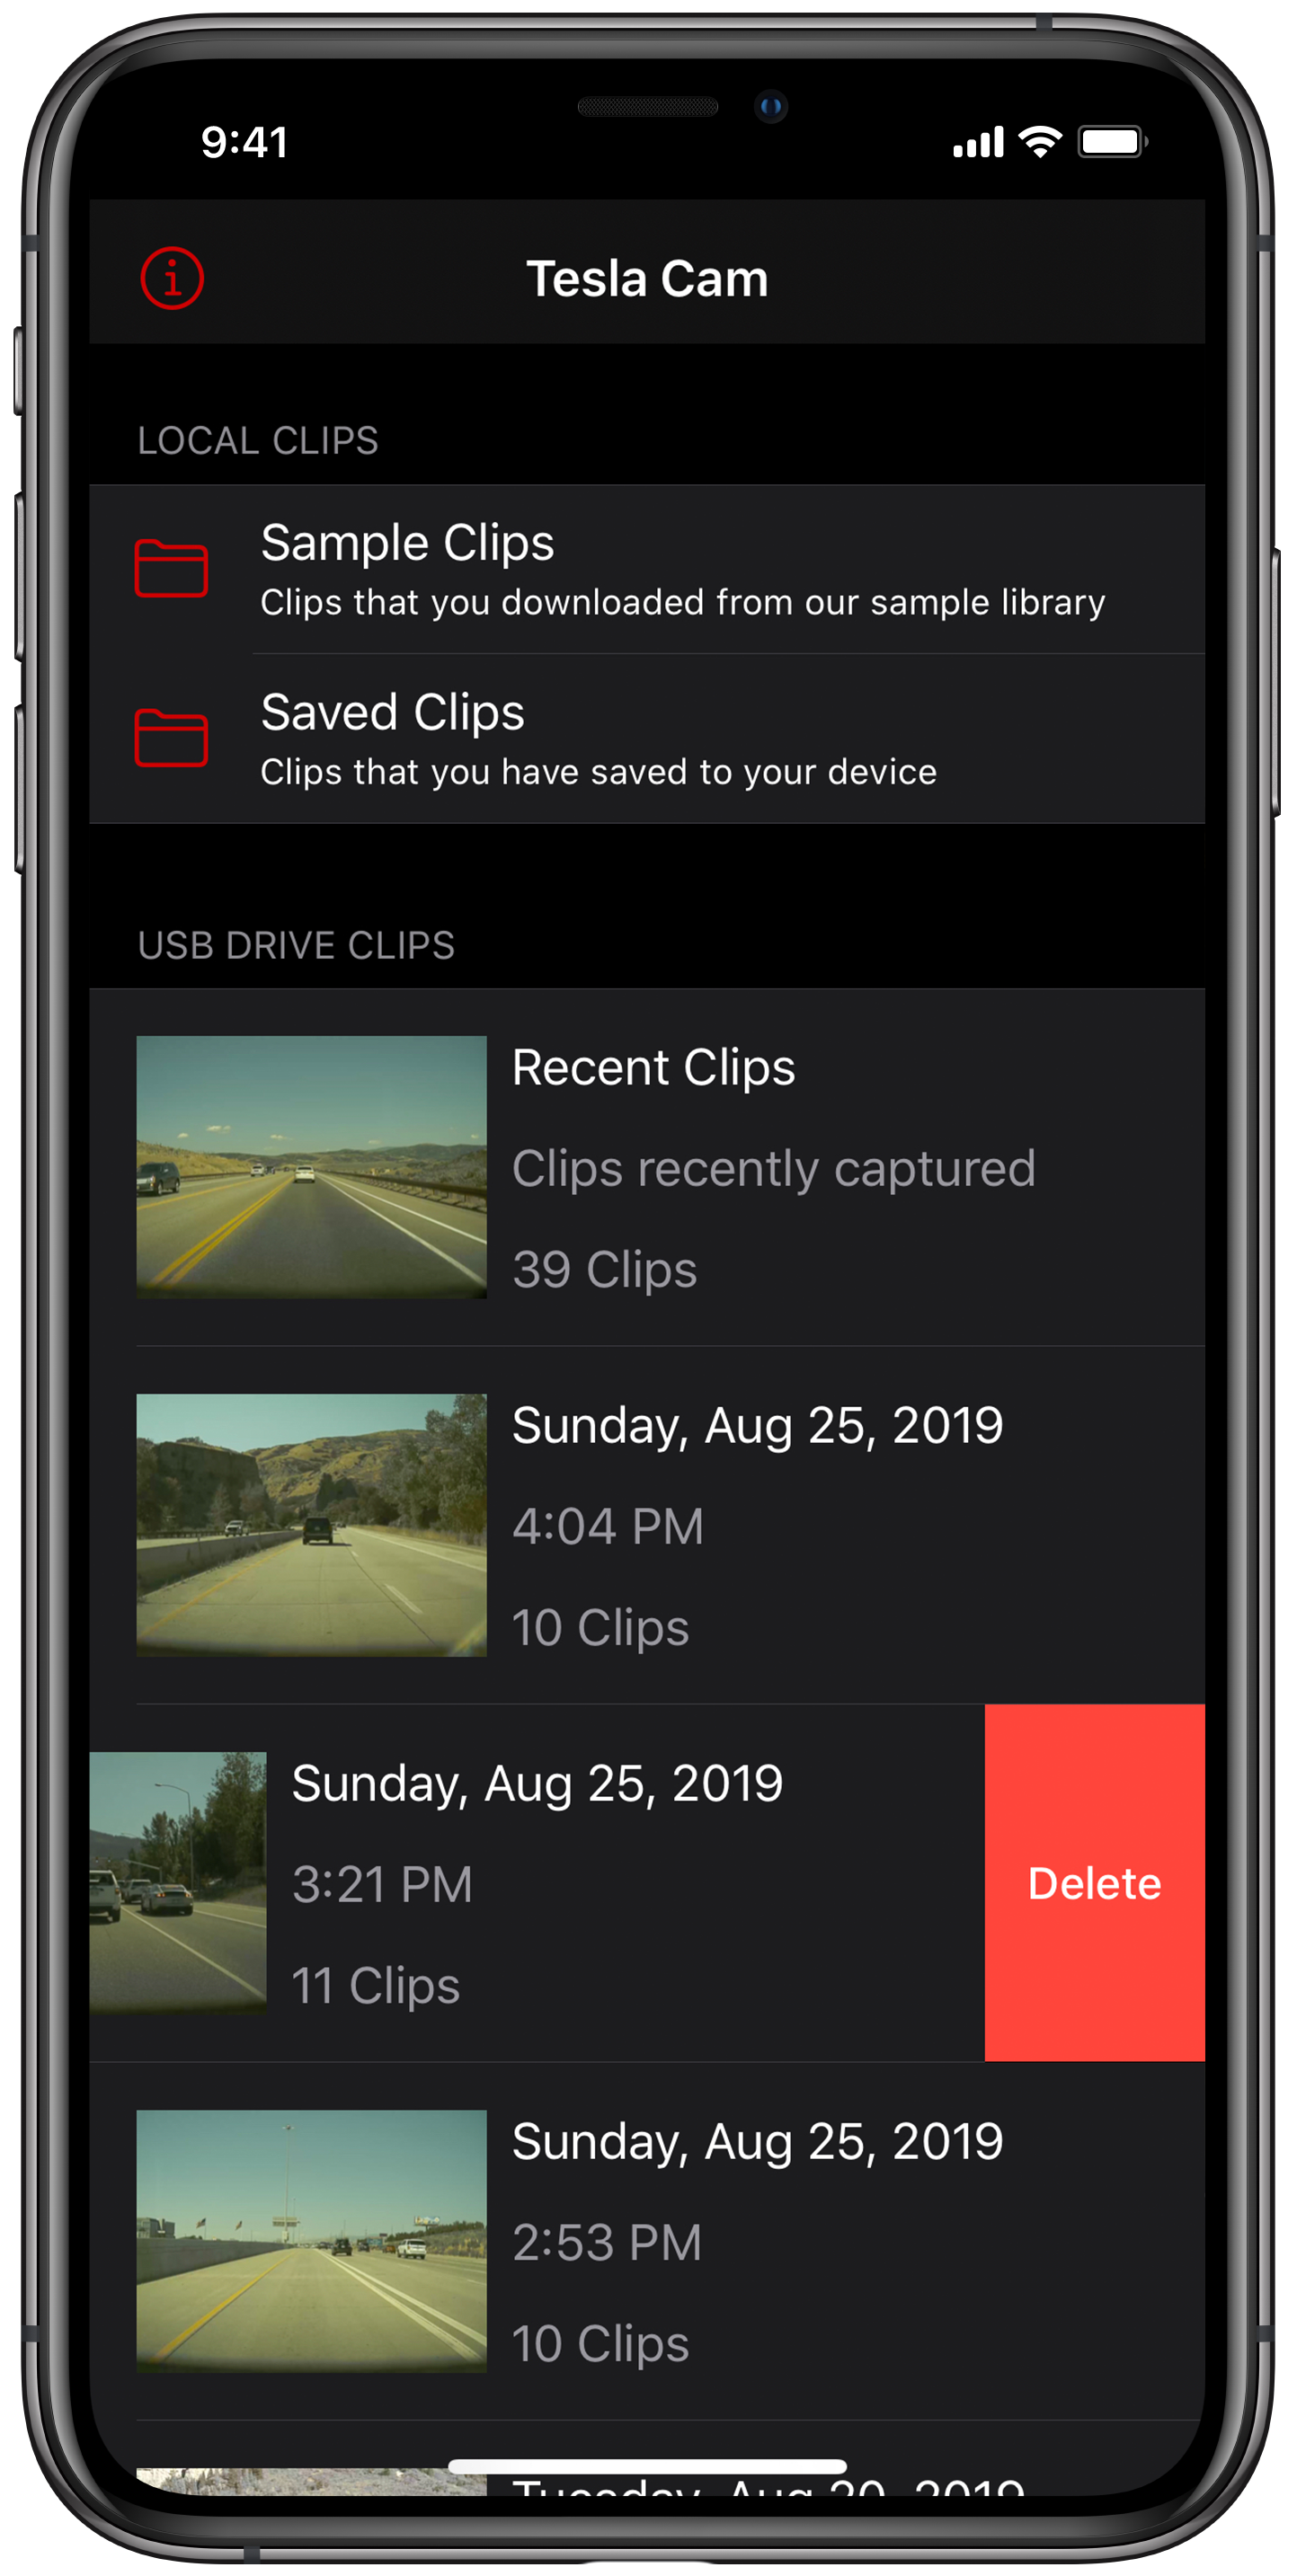 Keep your clips organized - Cam Viewer has previews of folders as well as clips. Clips can be saved to the phone for later review. You can delete individual clips or entire folders making cleanup quick and simple.